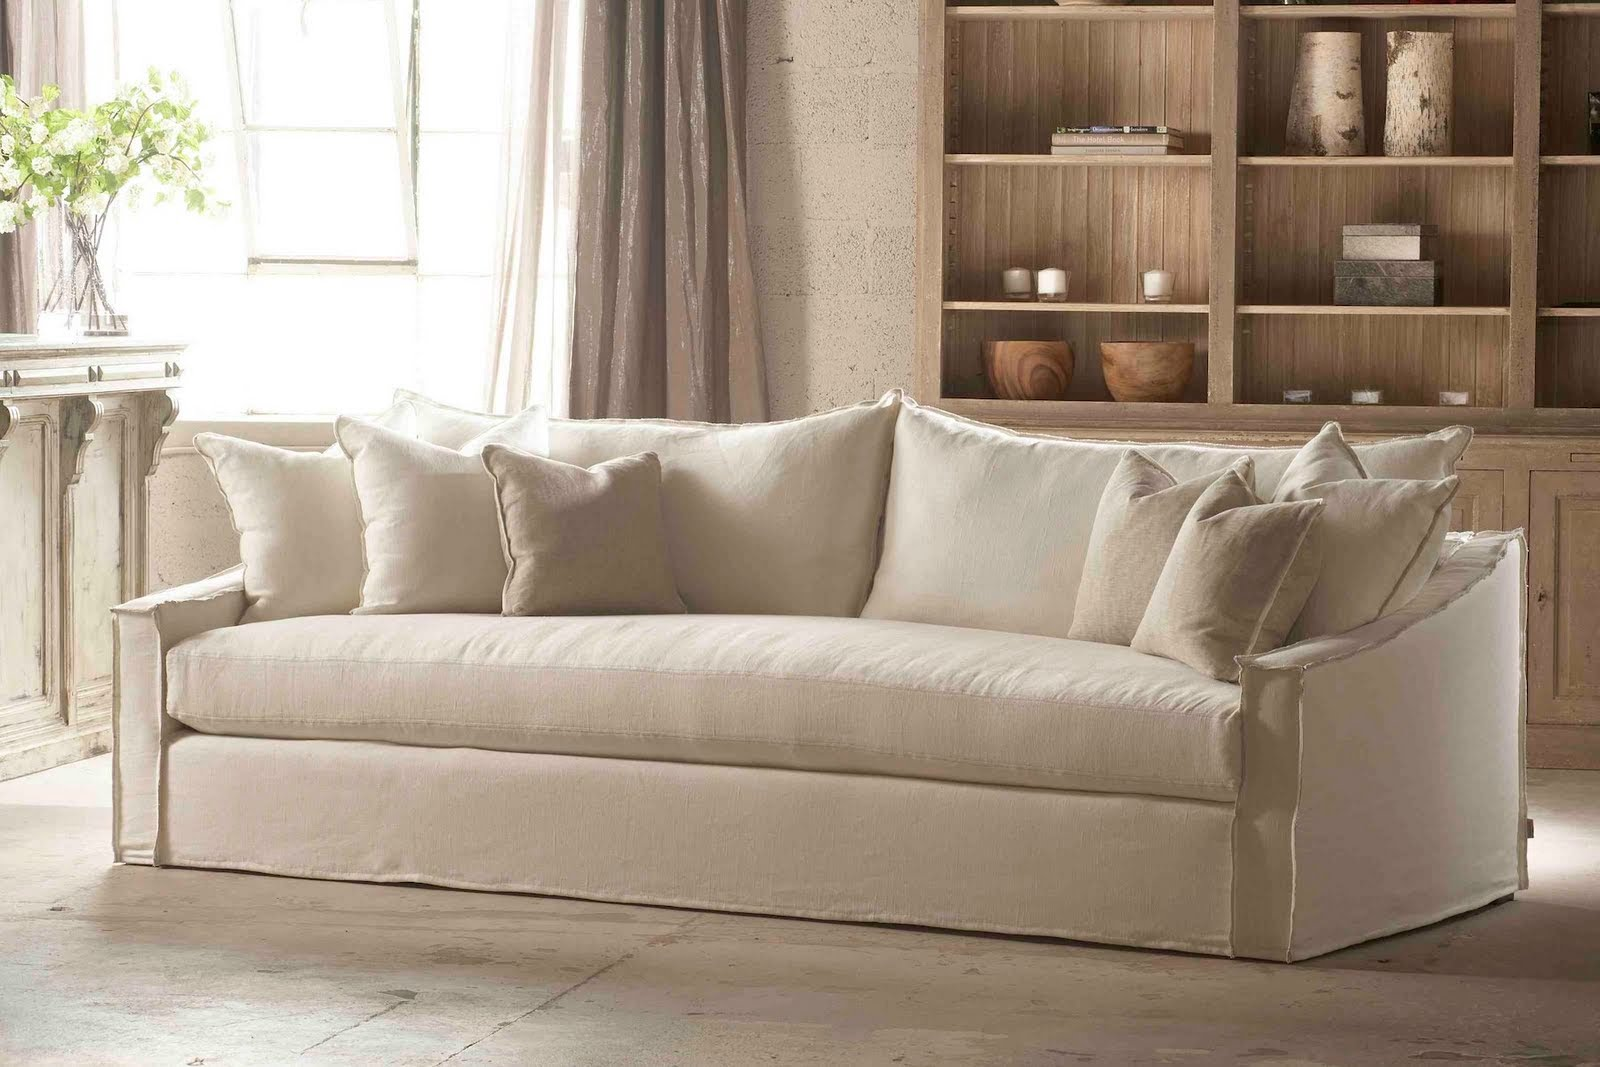 Fresh Elegant Sofa 13 For Your Modern Sofa Ideas with Elegant Sofa